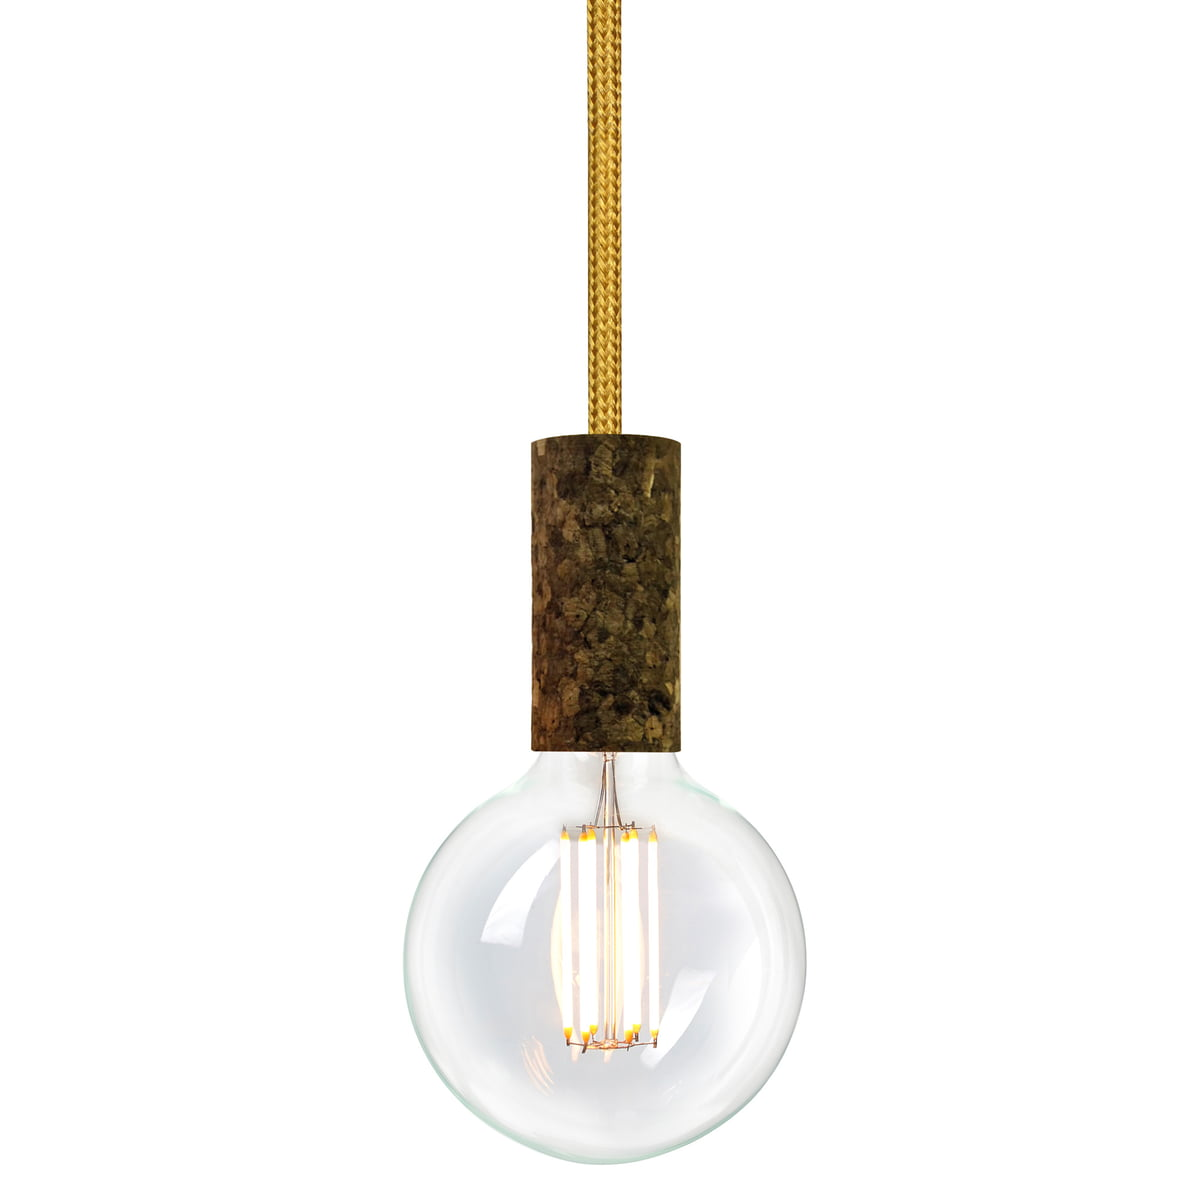 Cork lamp by nud collection at the shop cork soil gold spire tt 150 by nud collection with bulb aloadofball Images